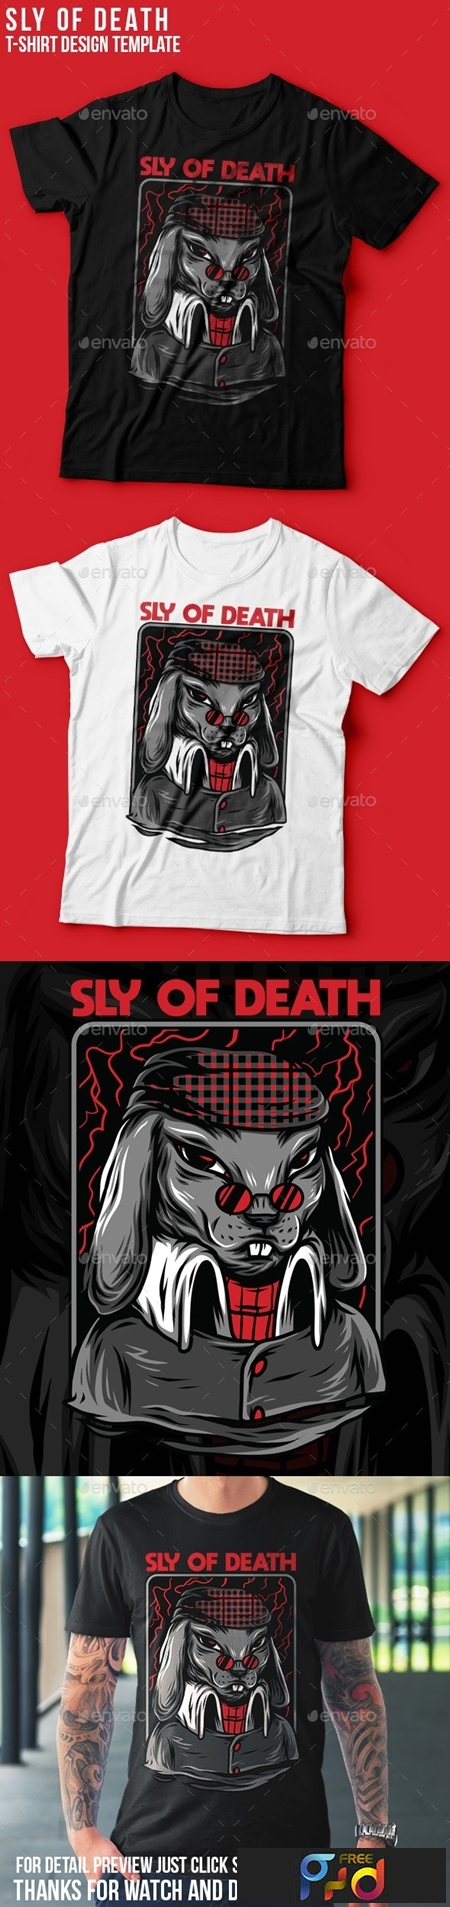 Sly of Death T-Shirt Design 23843095 1